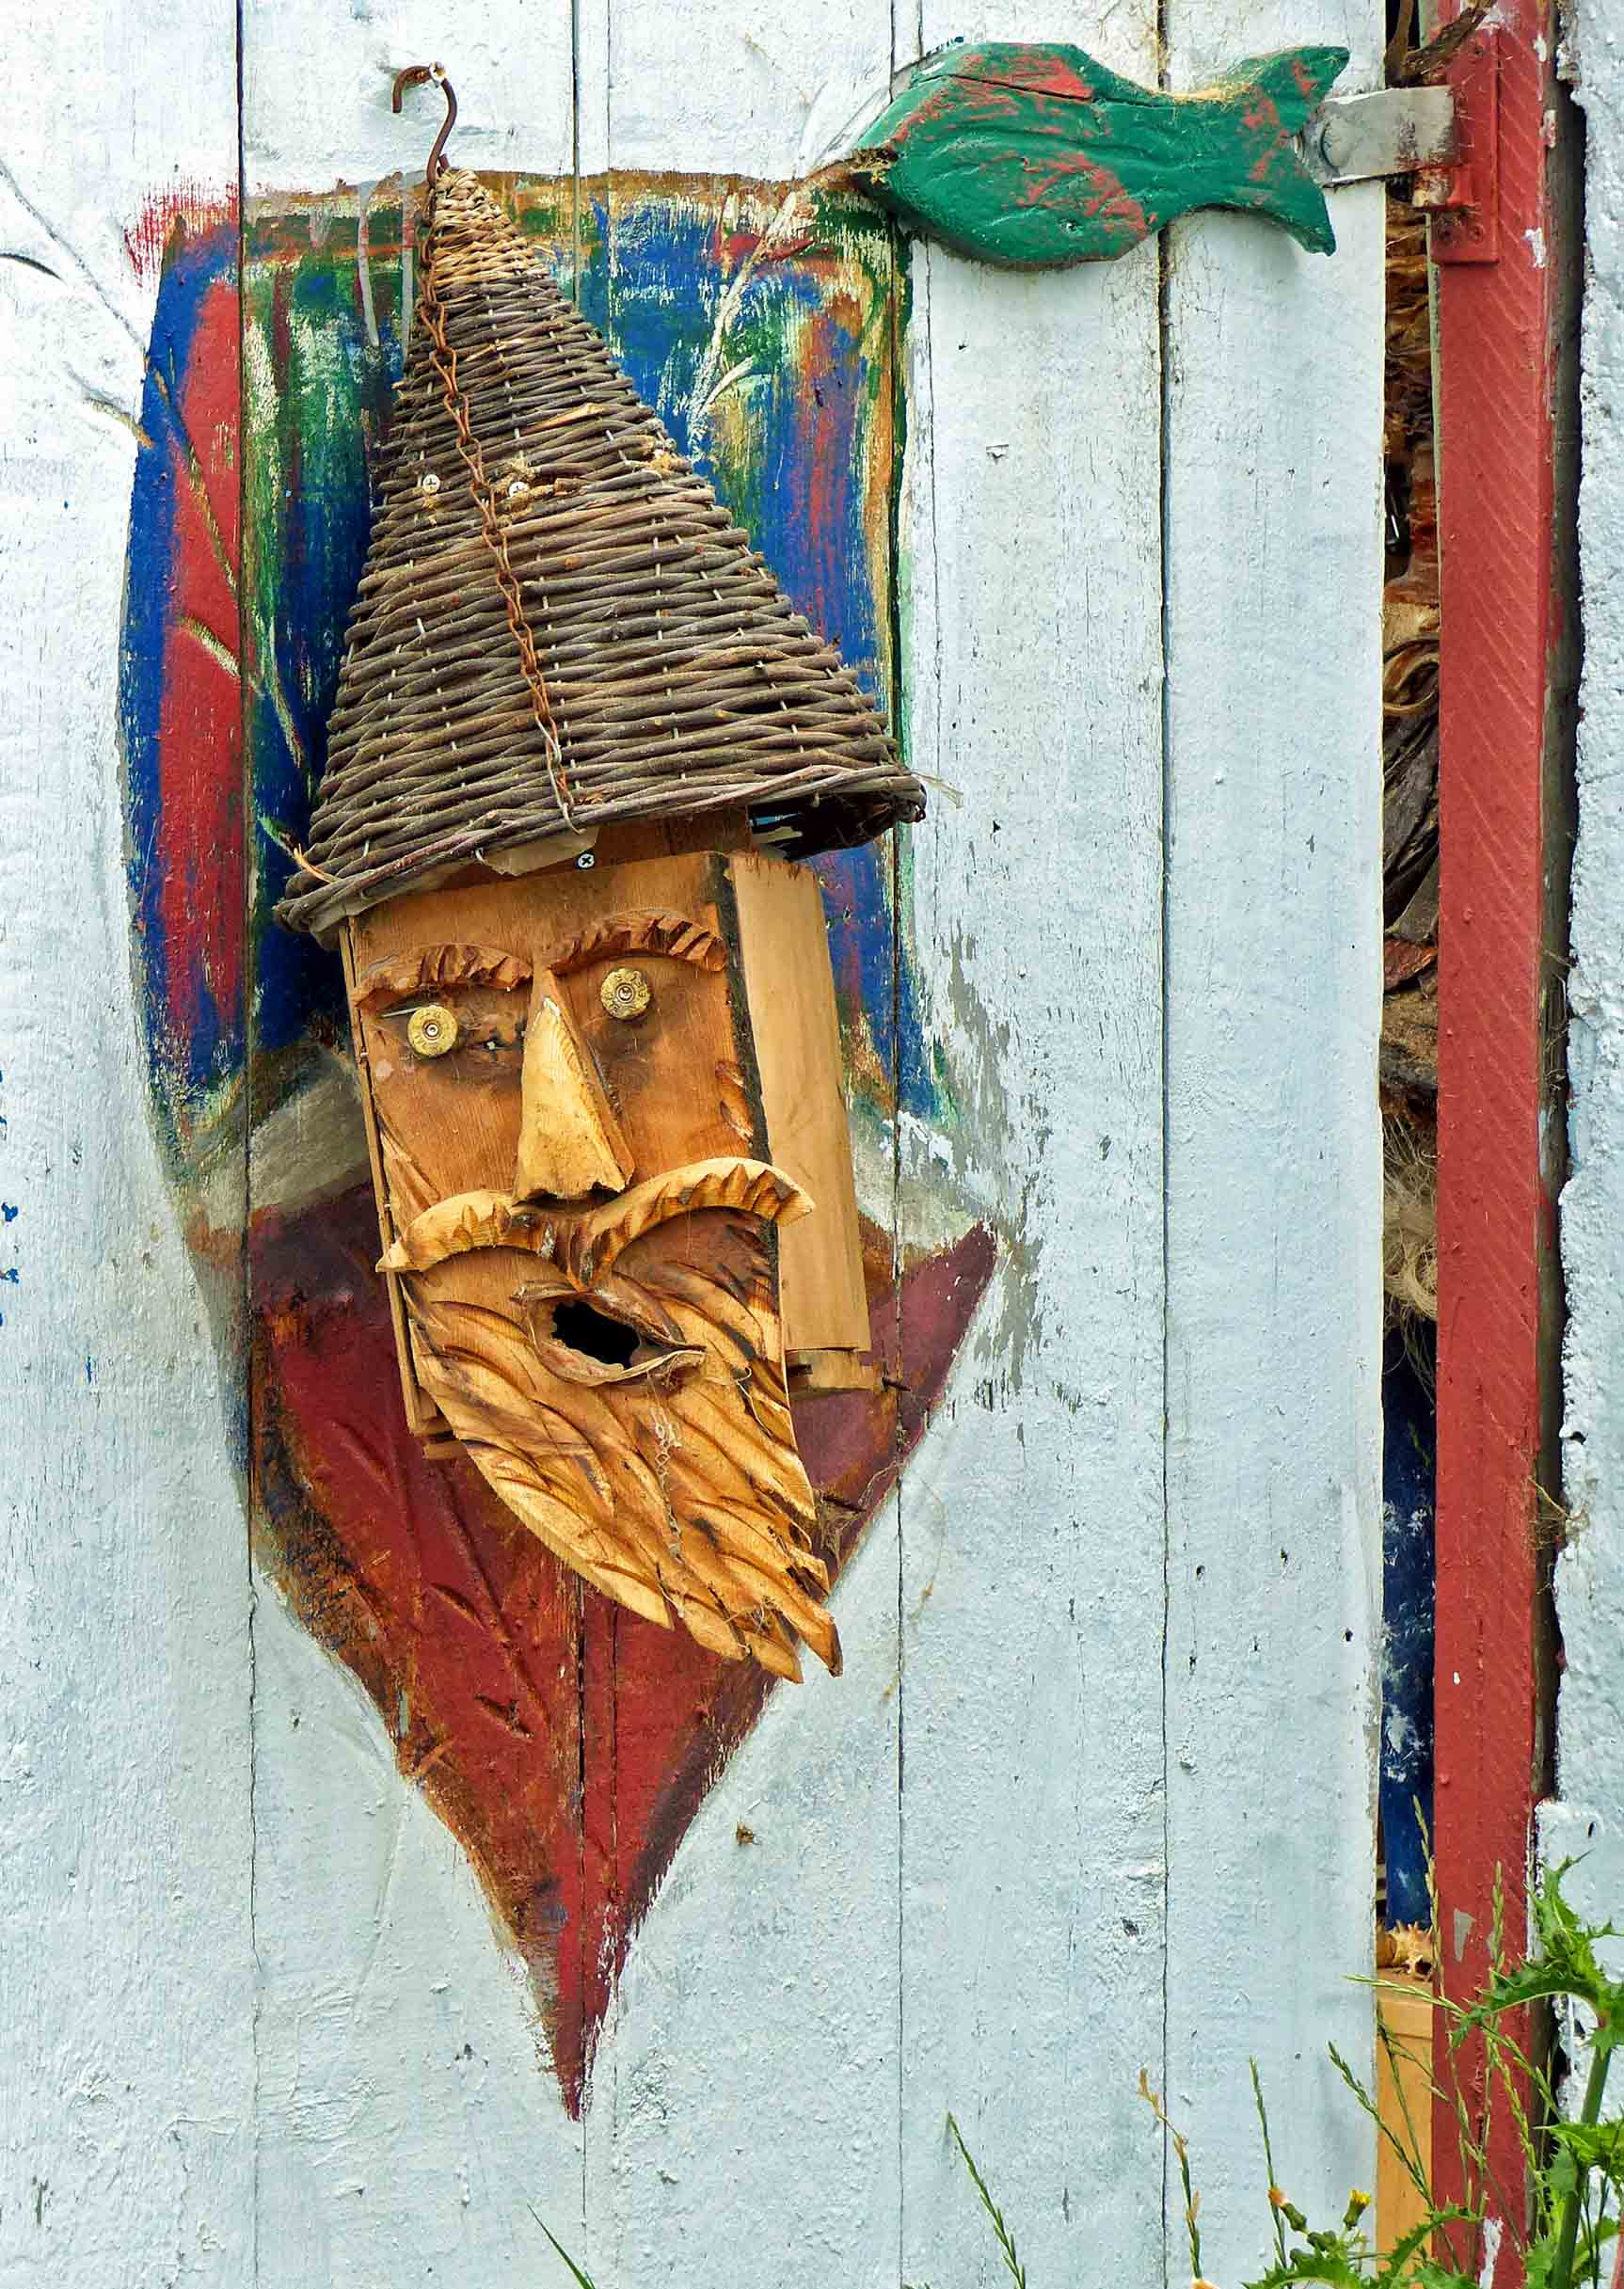 Carved wooden face hanging on a gate